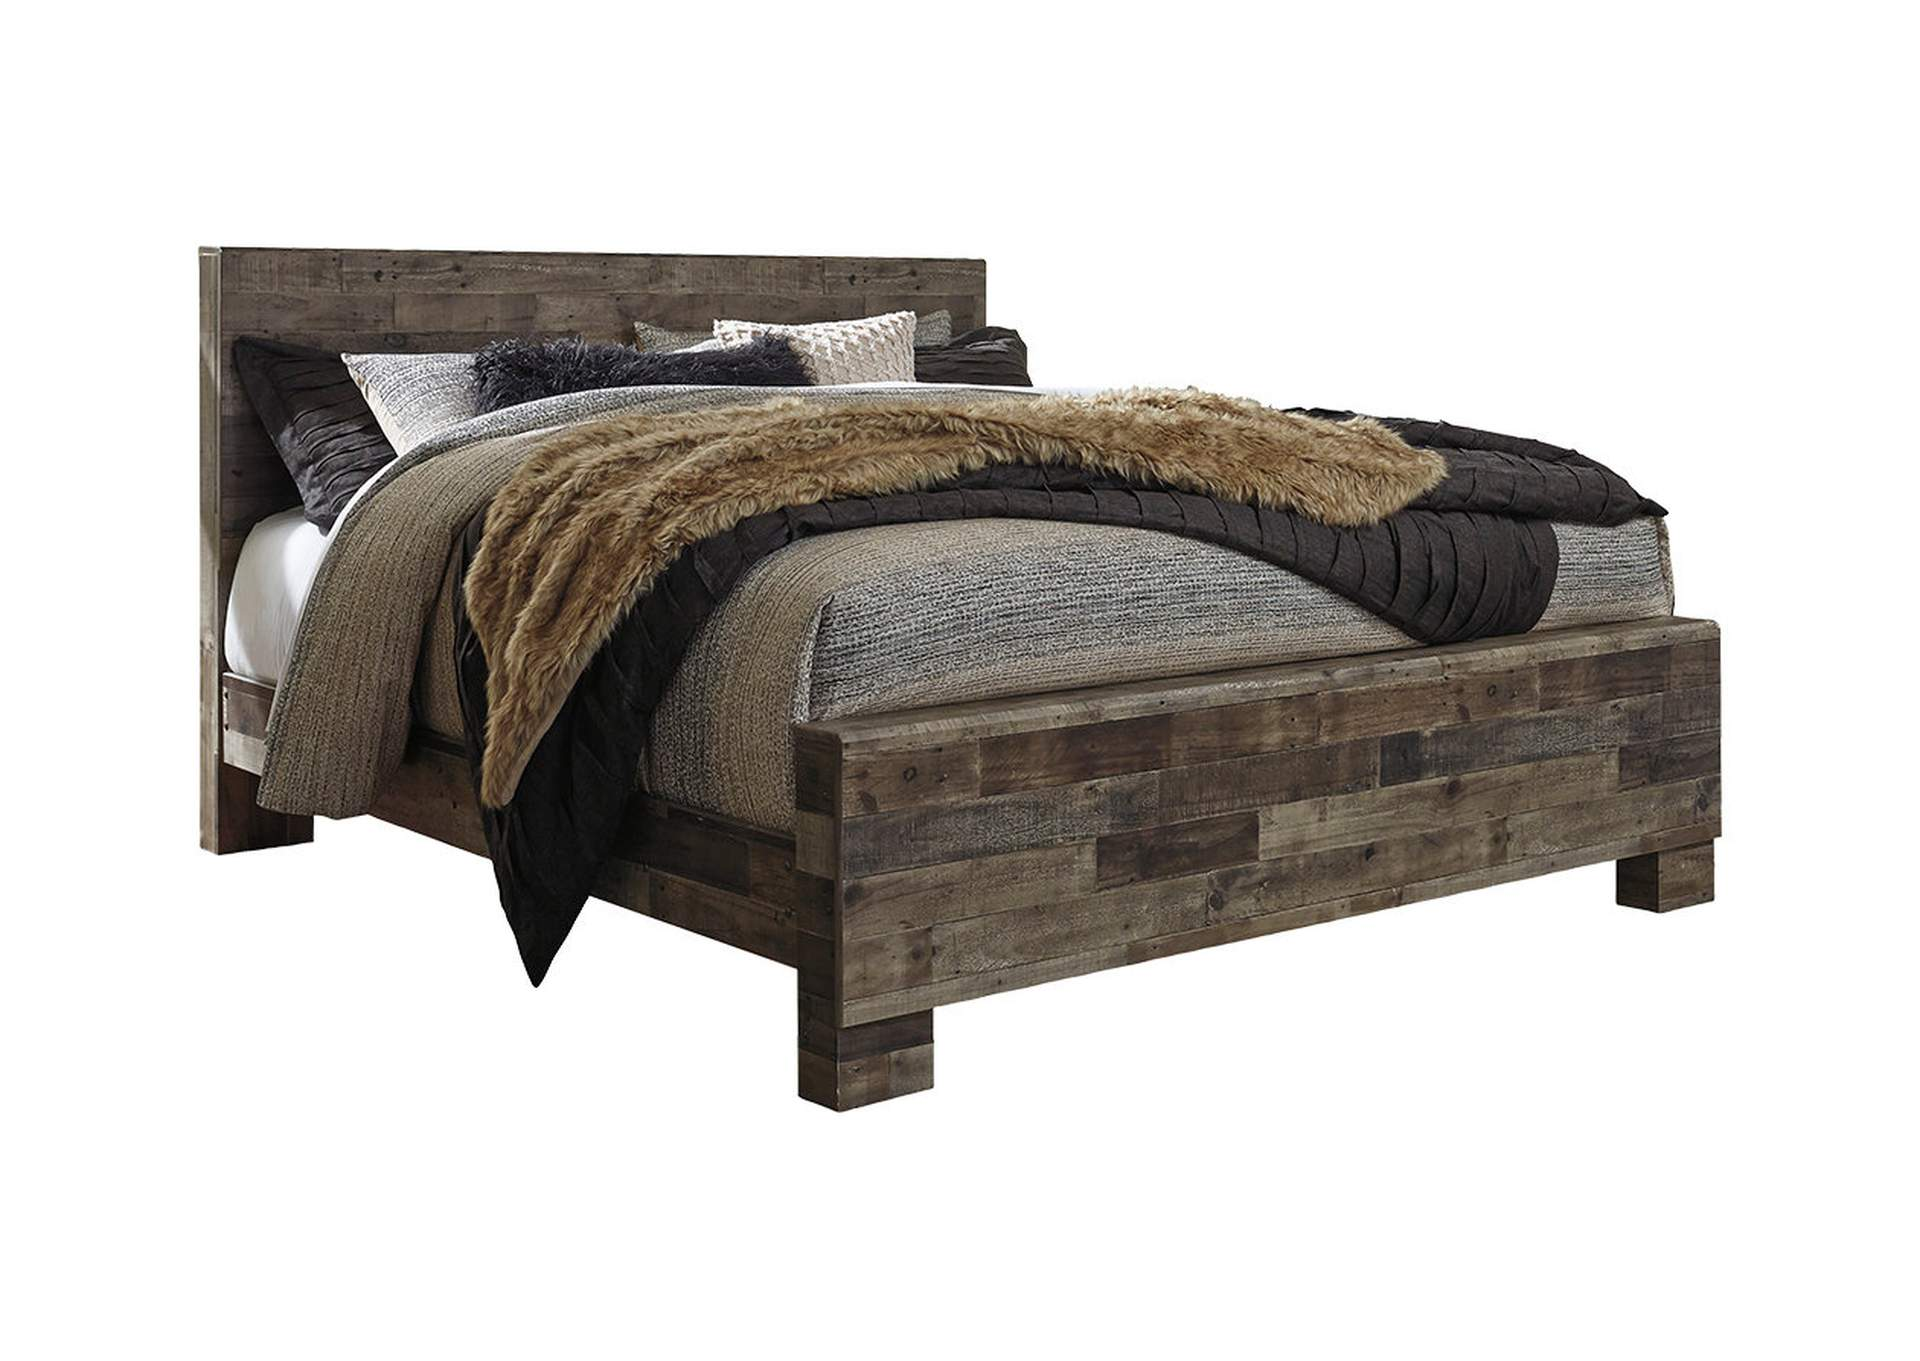 Derekson King Panel Bed,Benchcraft